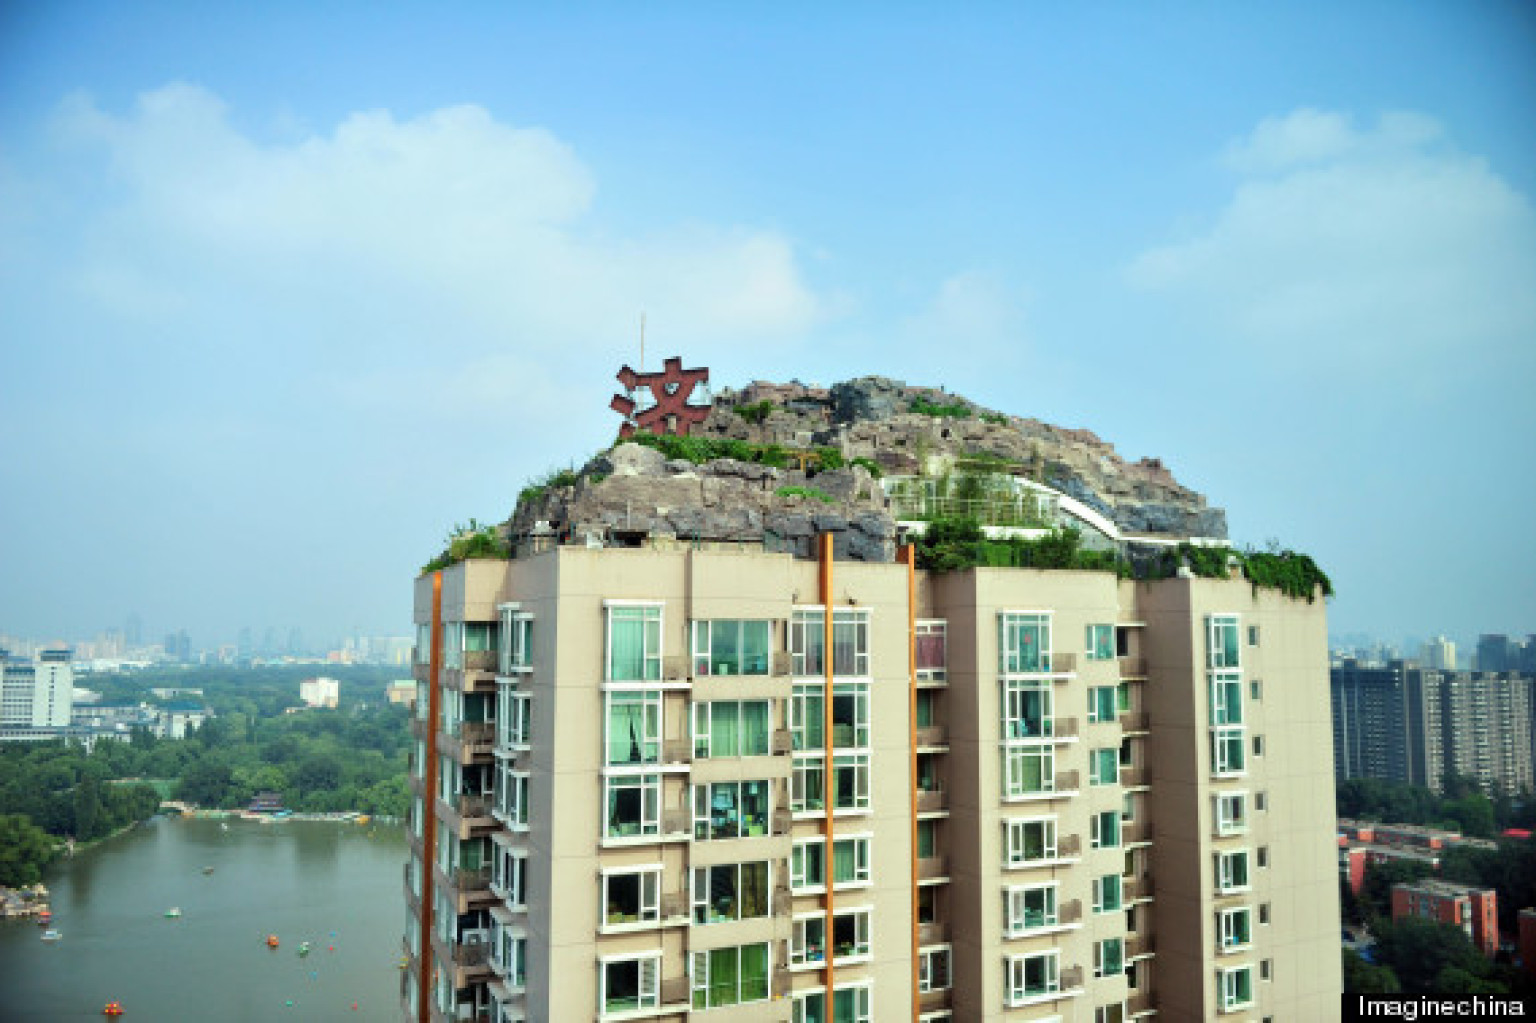 Zhang Lin Builds His Dream Mountain Home On Top Of A